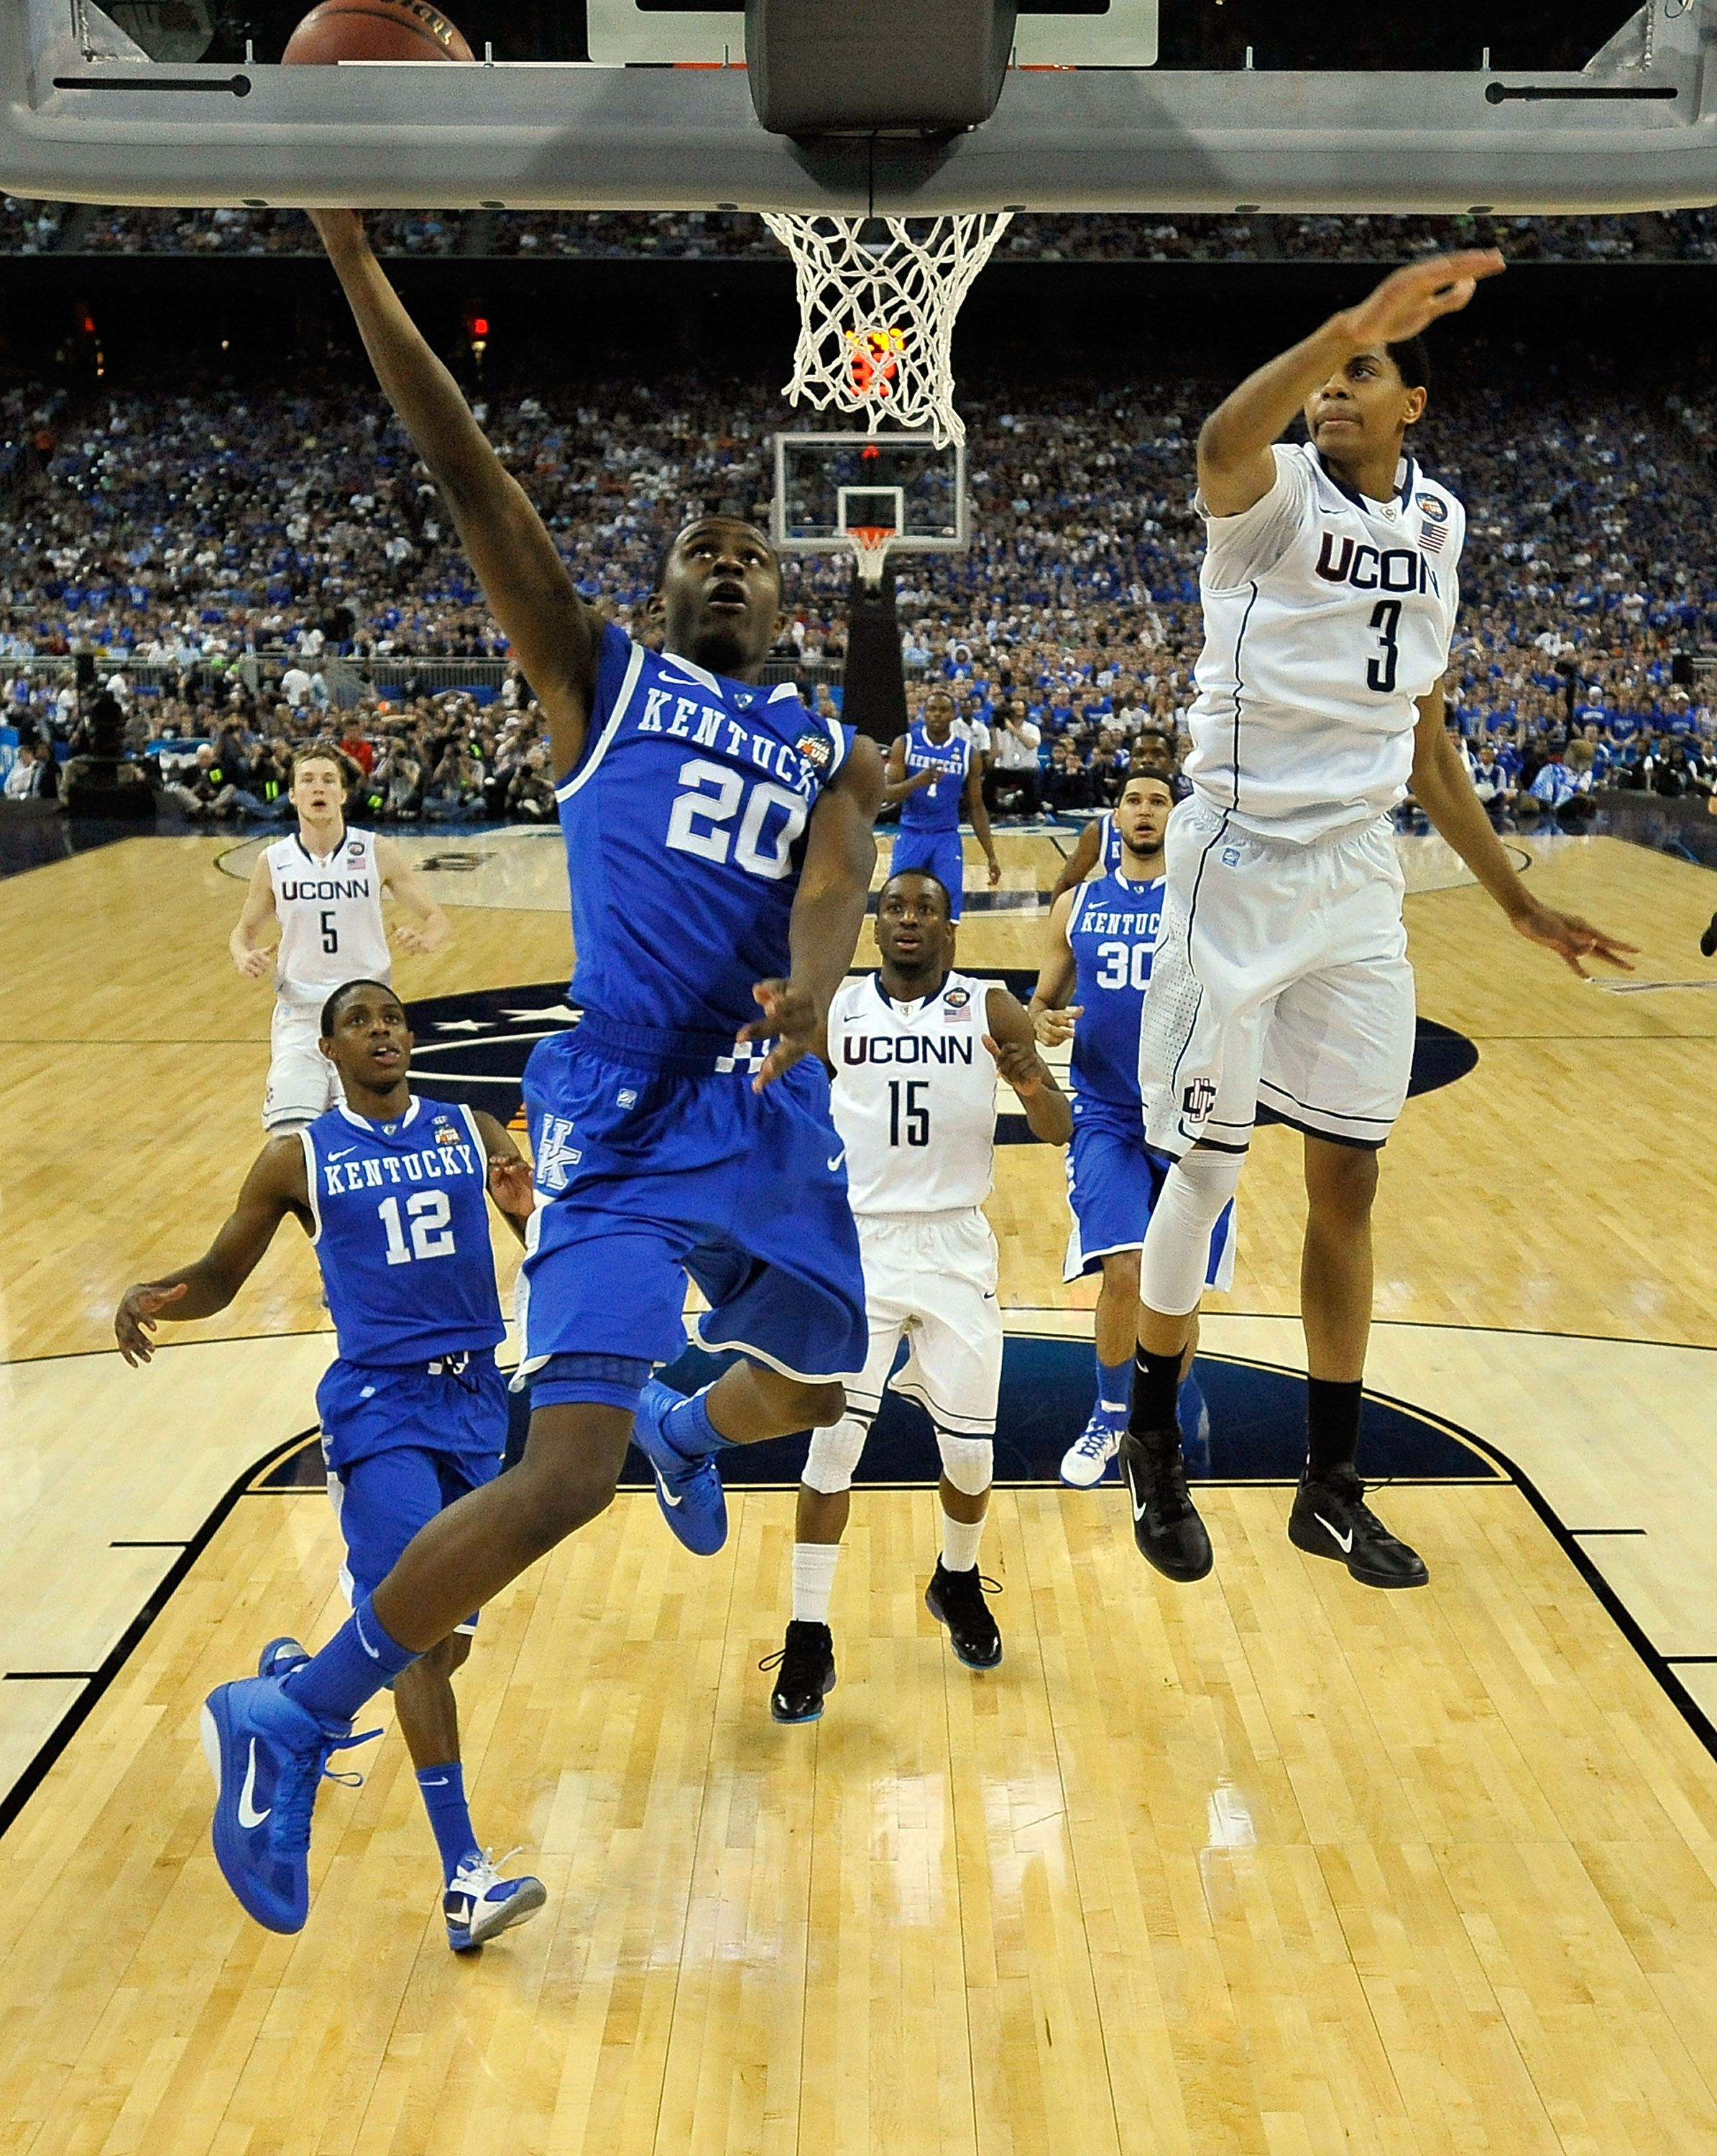 HOUSTON, TX - APRIL 02:  Doron Lamb #20 of the Kentucky Wildcats goes to the hoop against Jeremy Lamb #3 of the Connecticut Huskies during the National Semifinal game of the 2011 NCAA Division I Men's Basketball Championship at Reliant Stadium on April 2,